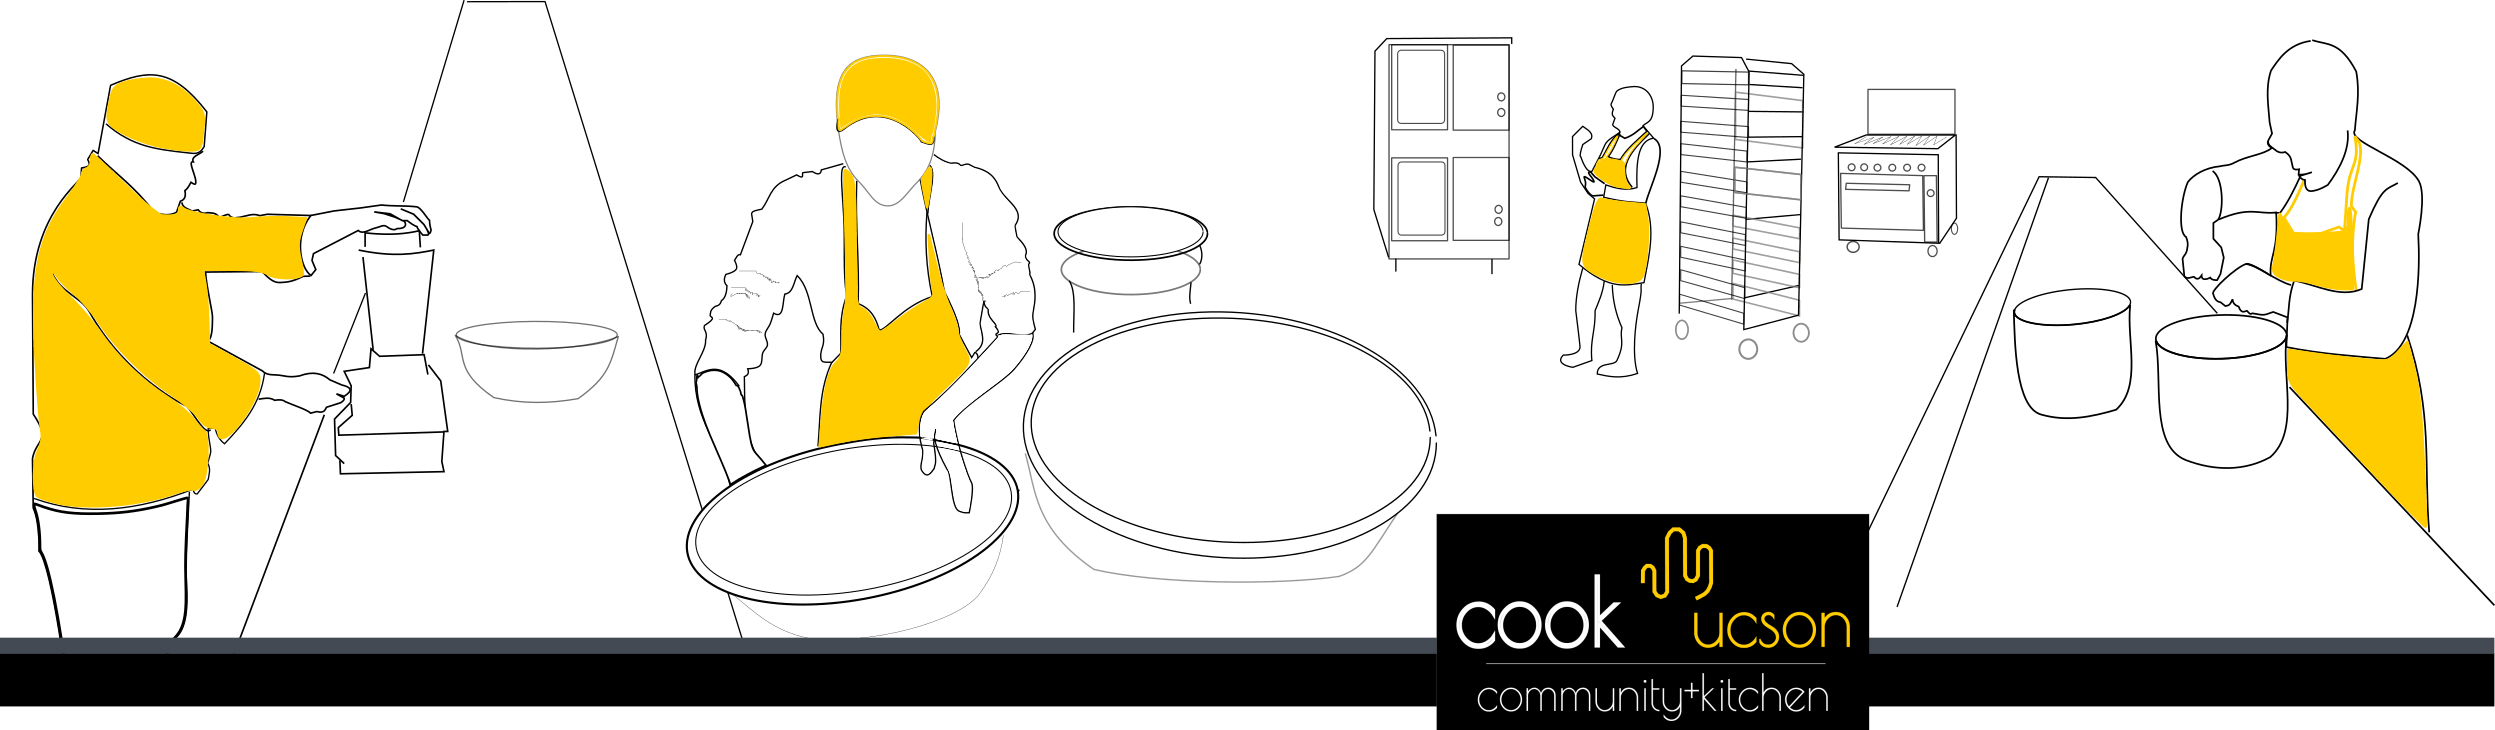 Kitchen clipart commercial kitchen. Cook tucson community culinary